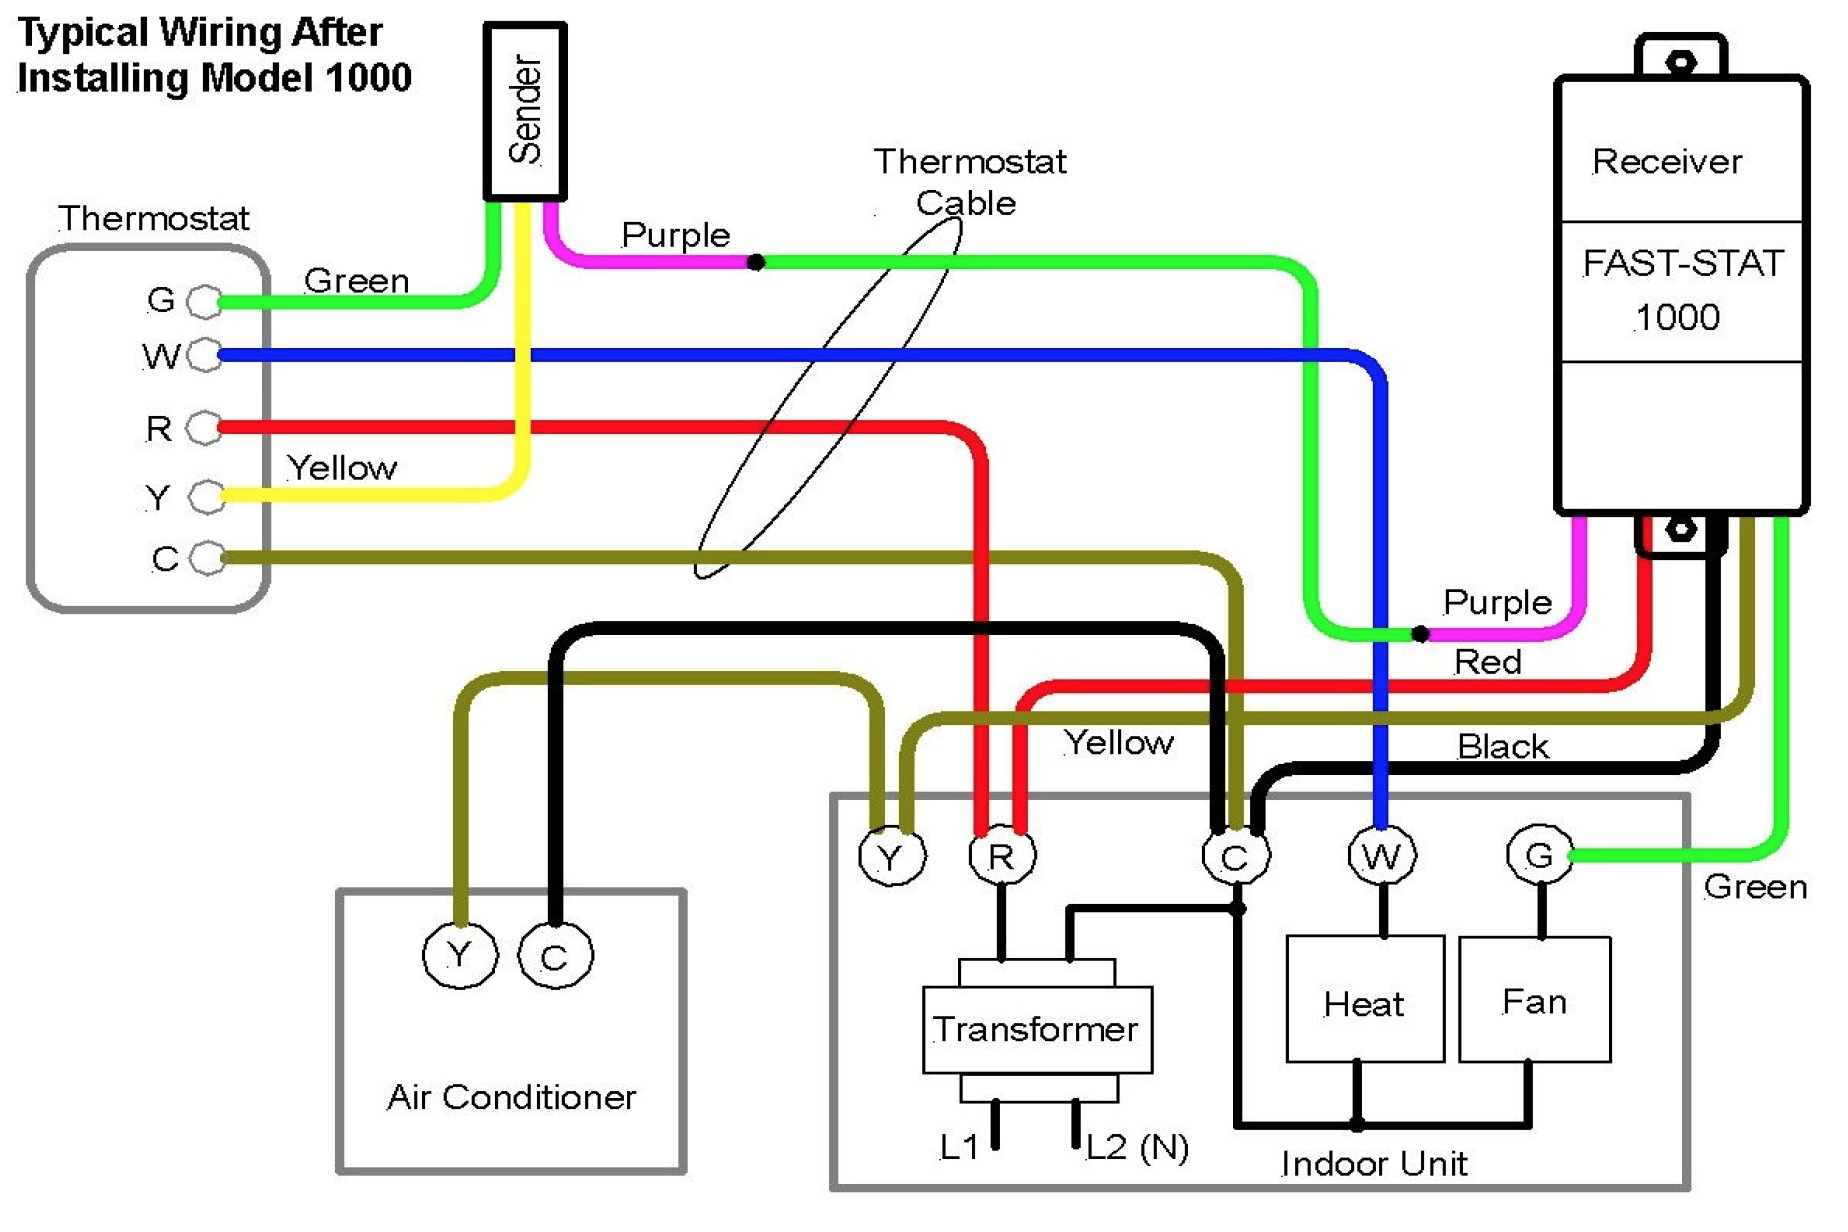 Fast-Stat 1000 and Common Maker - Installation Guide – Simple on 4 wire fan diagram, 4 wire zone valve diagram, 4 wire thermocouple diagram, 4 wire relay diagram, 4 wire lamp diagram, 4 wire alternator diagram, 4 wire motor diagram, 4 wire solenoid diagram, 4 wire switch diagram, 4 wire ignition diagram, 4 wire furnace diagram, 4 wire sensor diagram, 4 wire actuator diagram, 4 wire timer diagram, 4 wire thermometer diagram, 4 wire voltage regulator diagram,